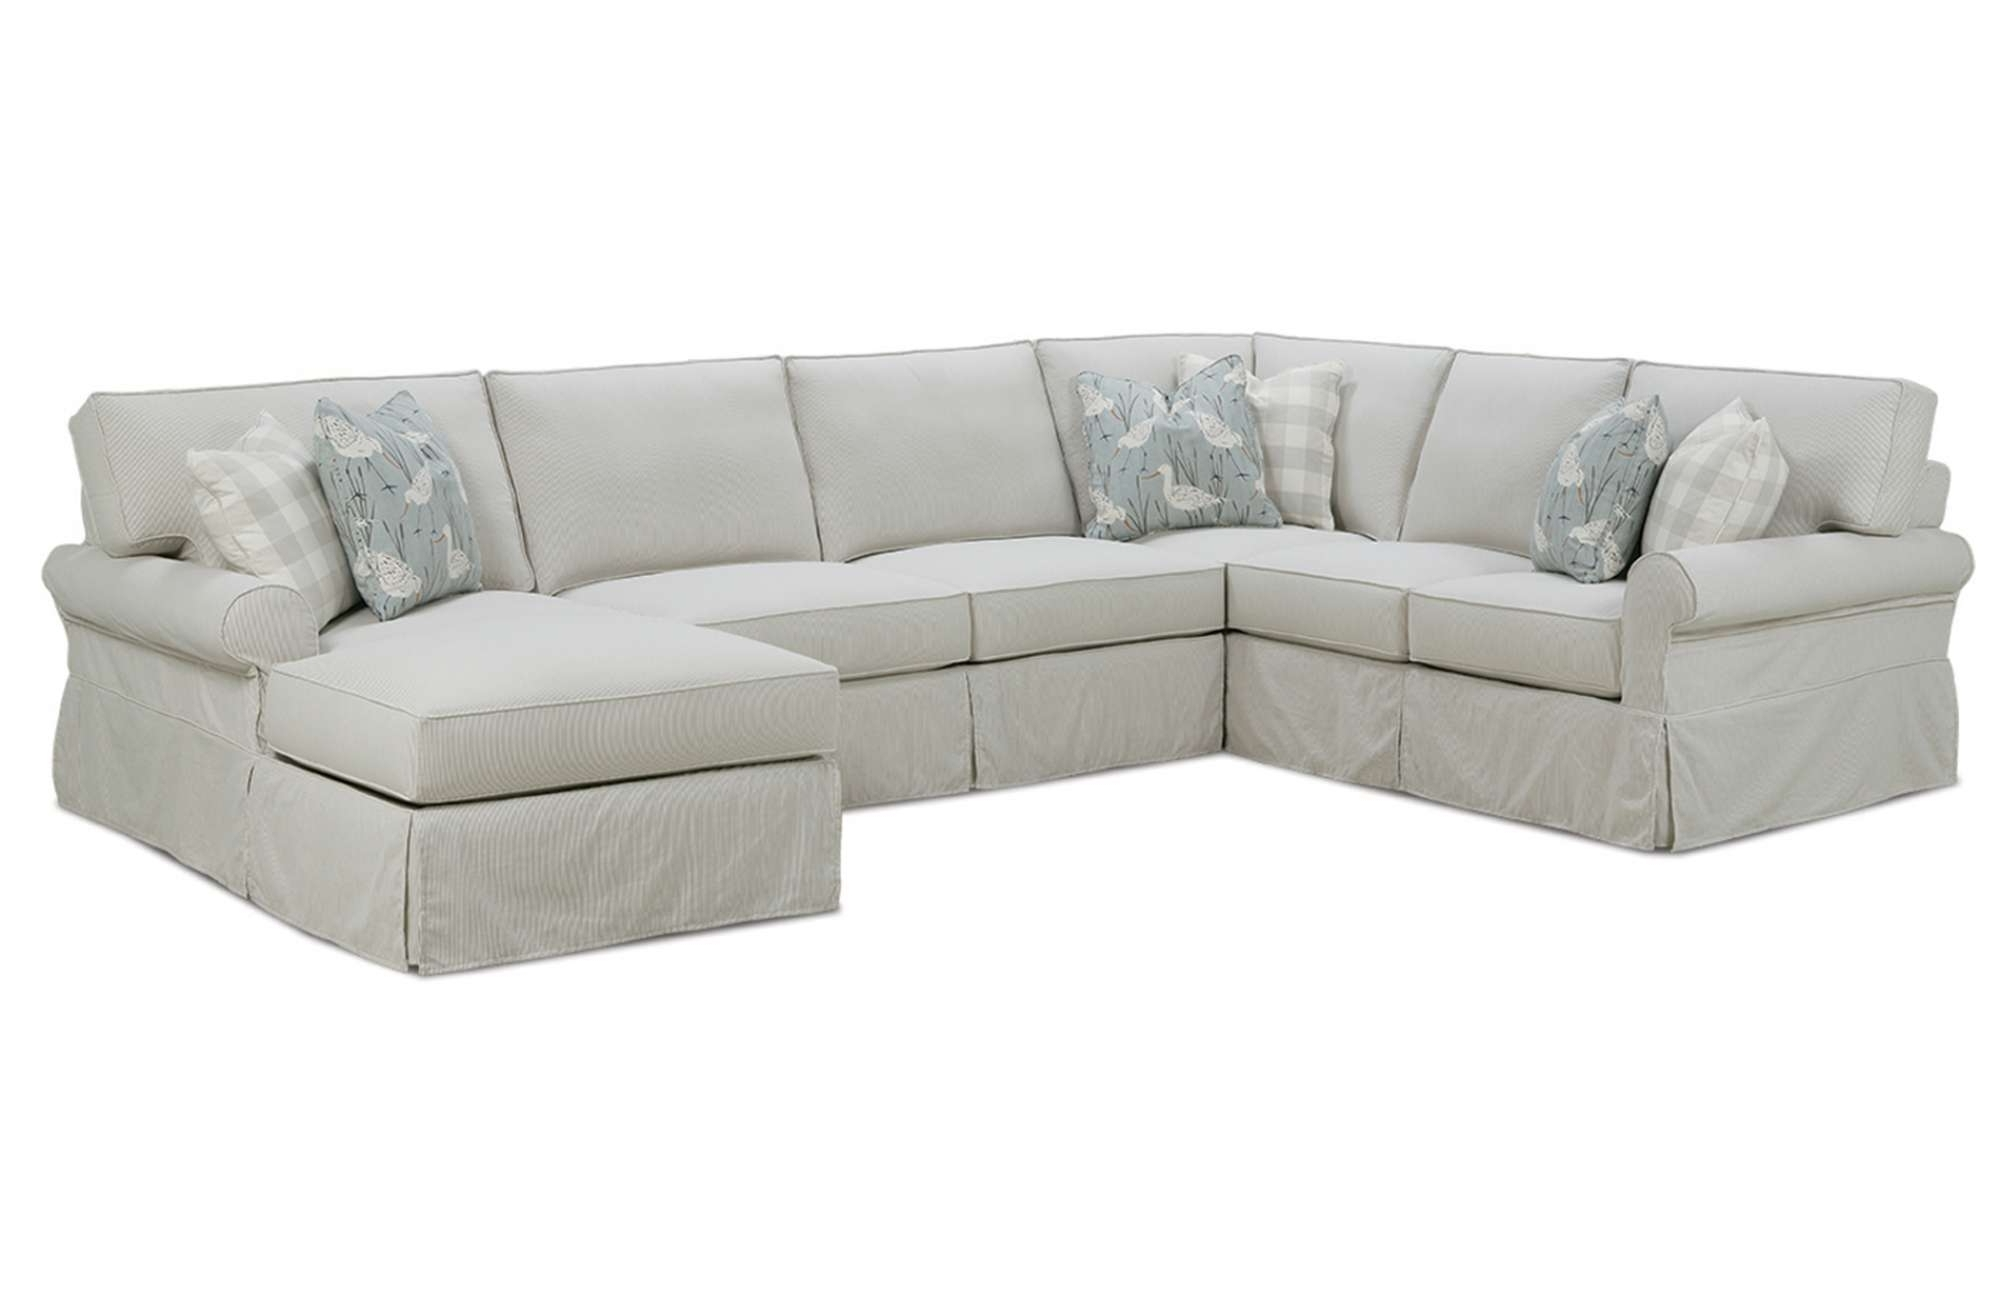 Most Recent Slipcovers For Sectional Sofas With Chaise With Easton Slipcover Sectionalrowe Furniture (View 5 of 15)